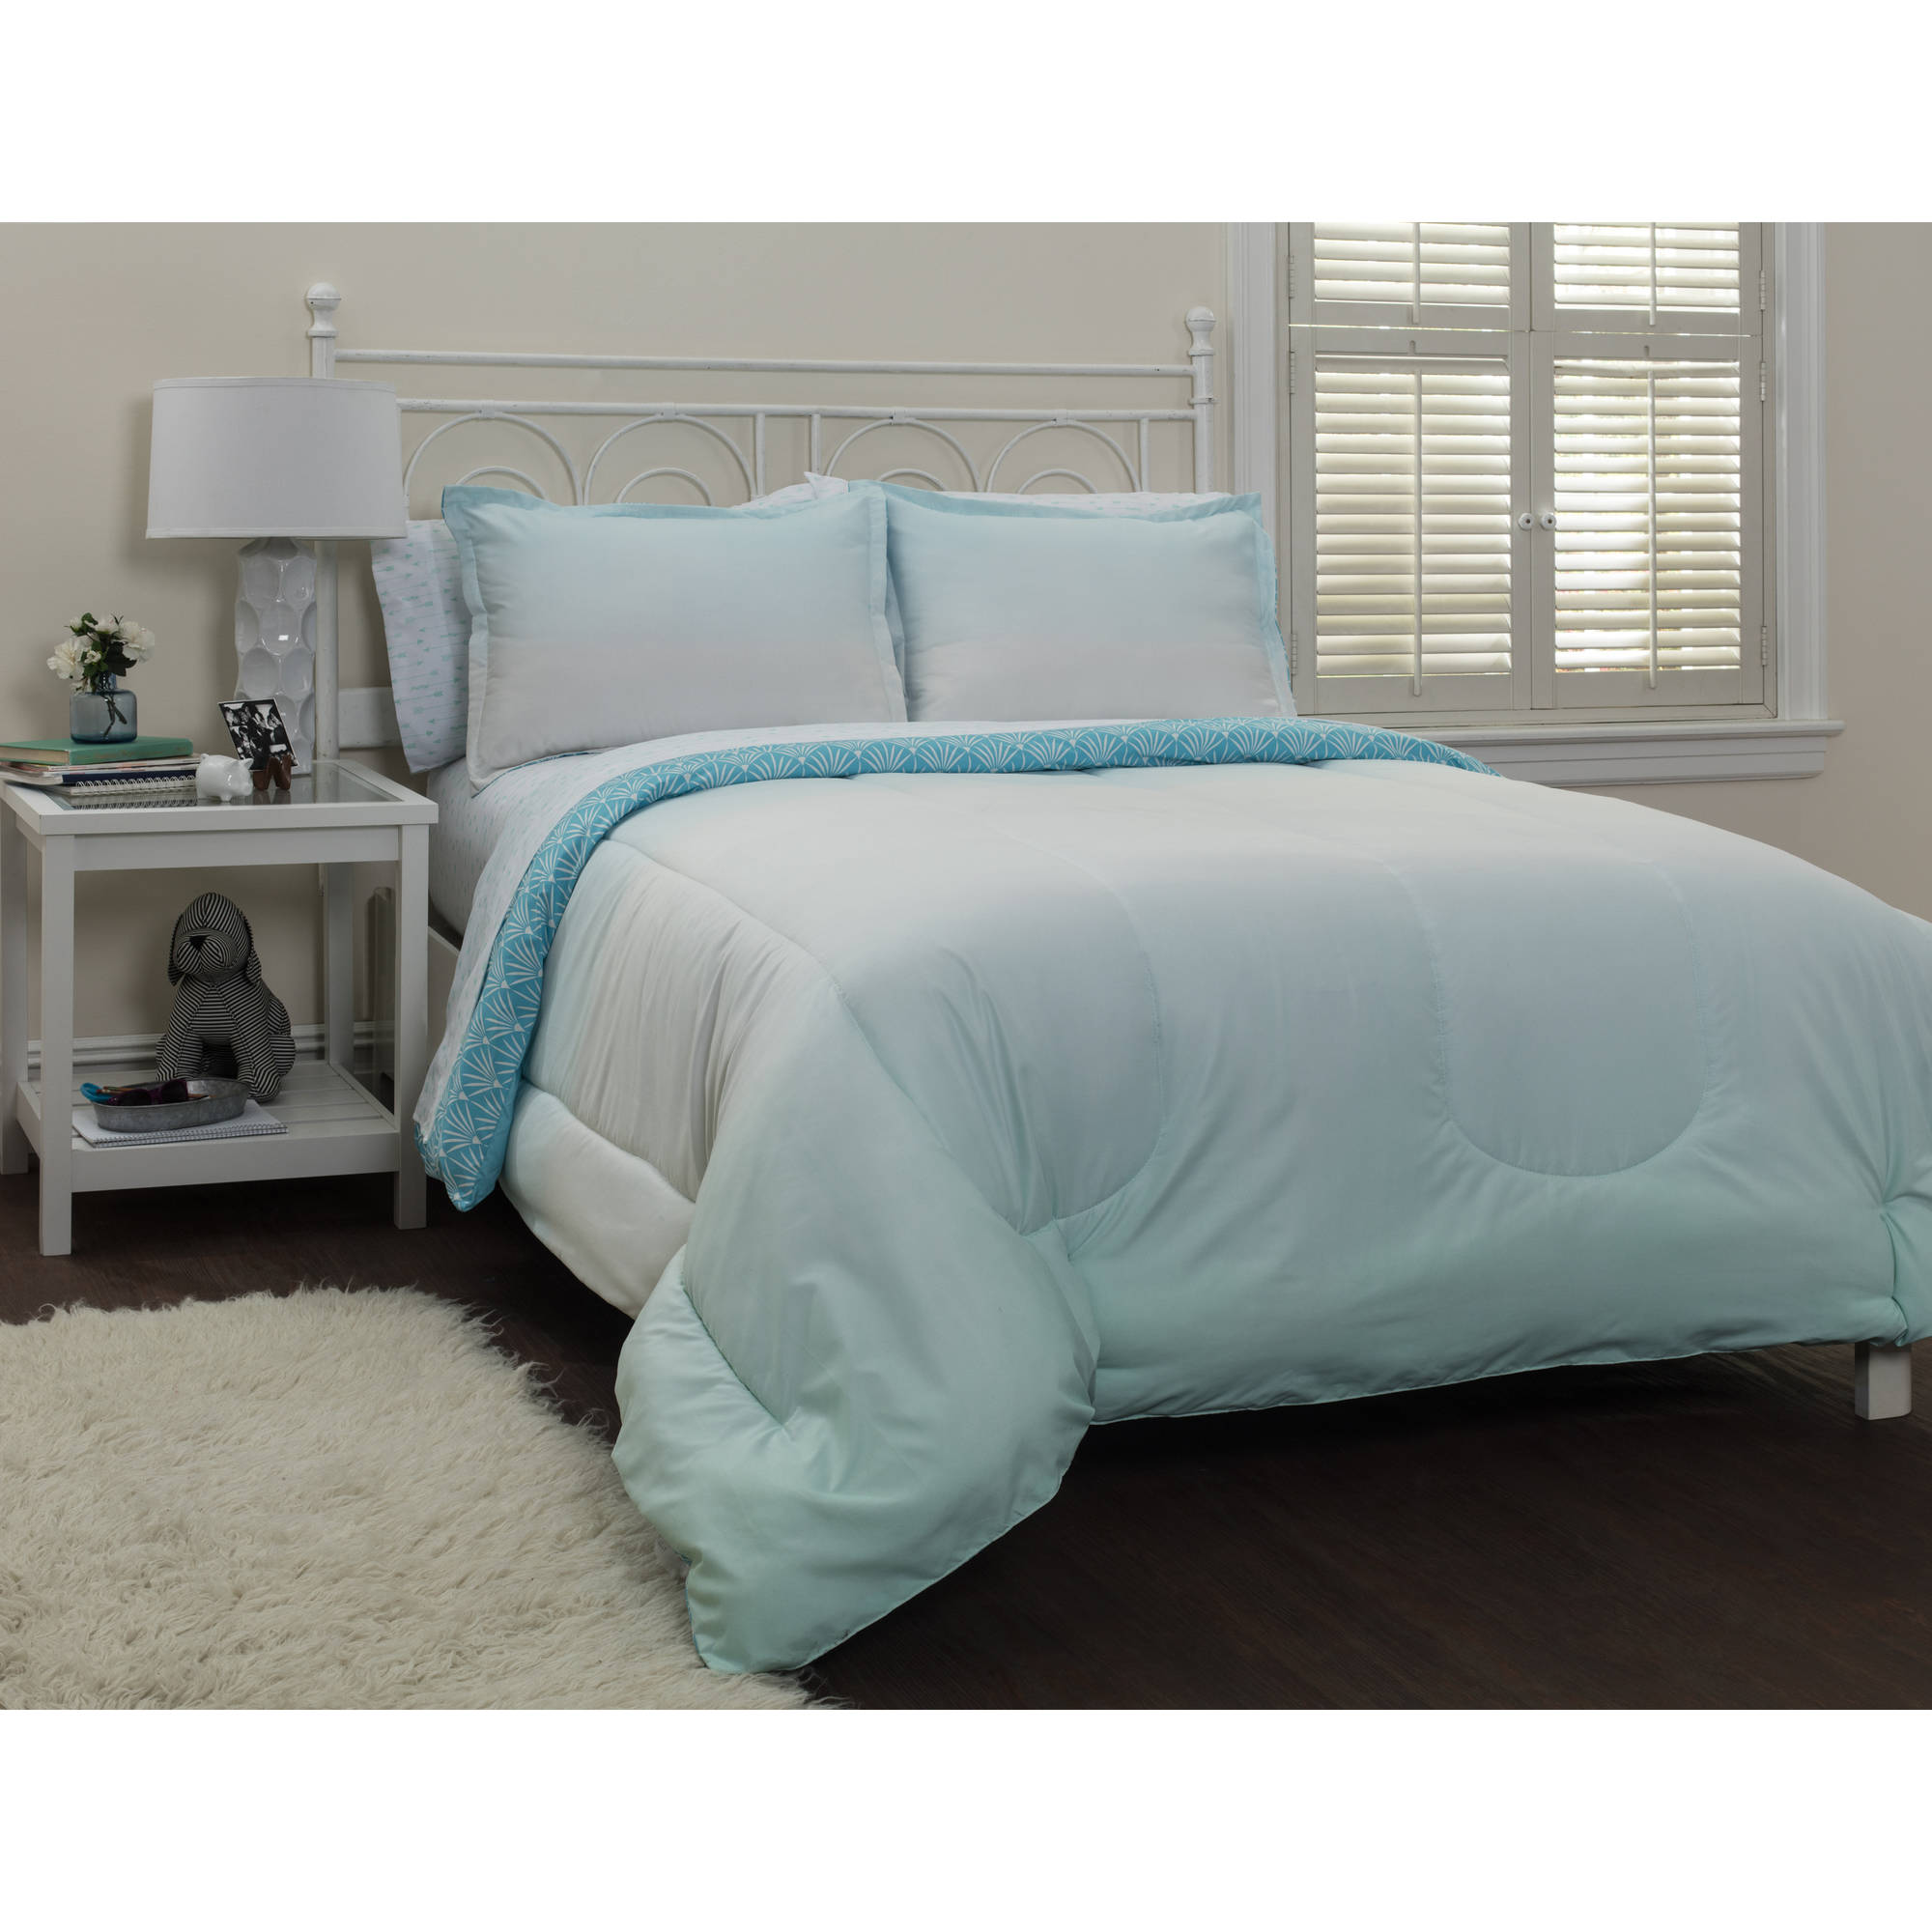 your zone ombre cool bed-in-a-bag bedding set